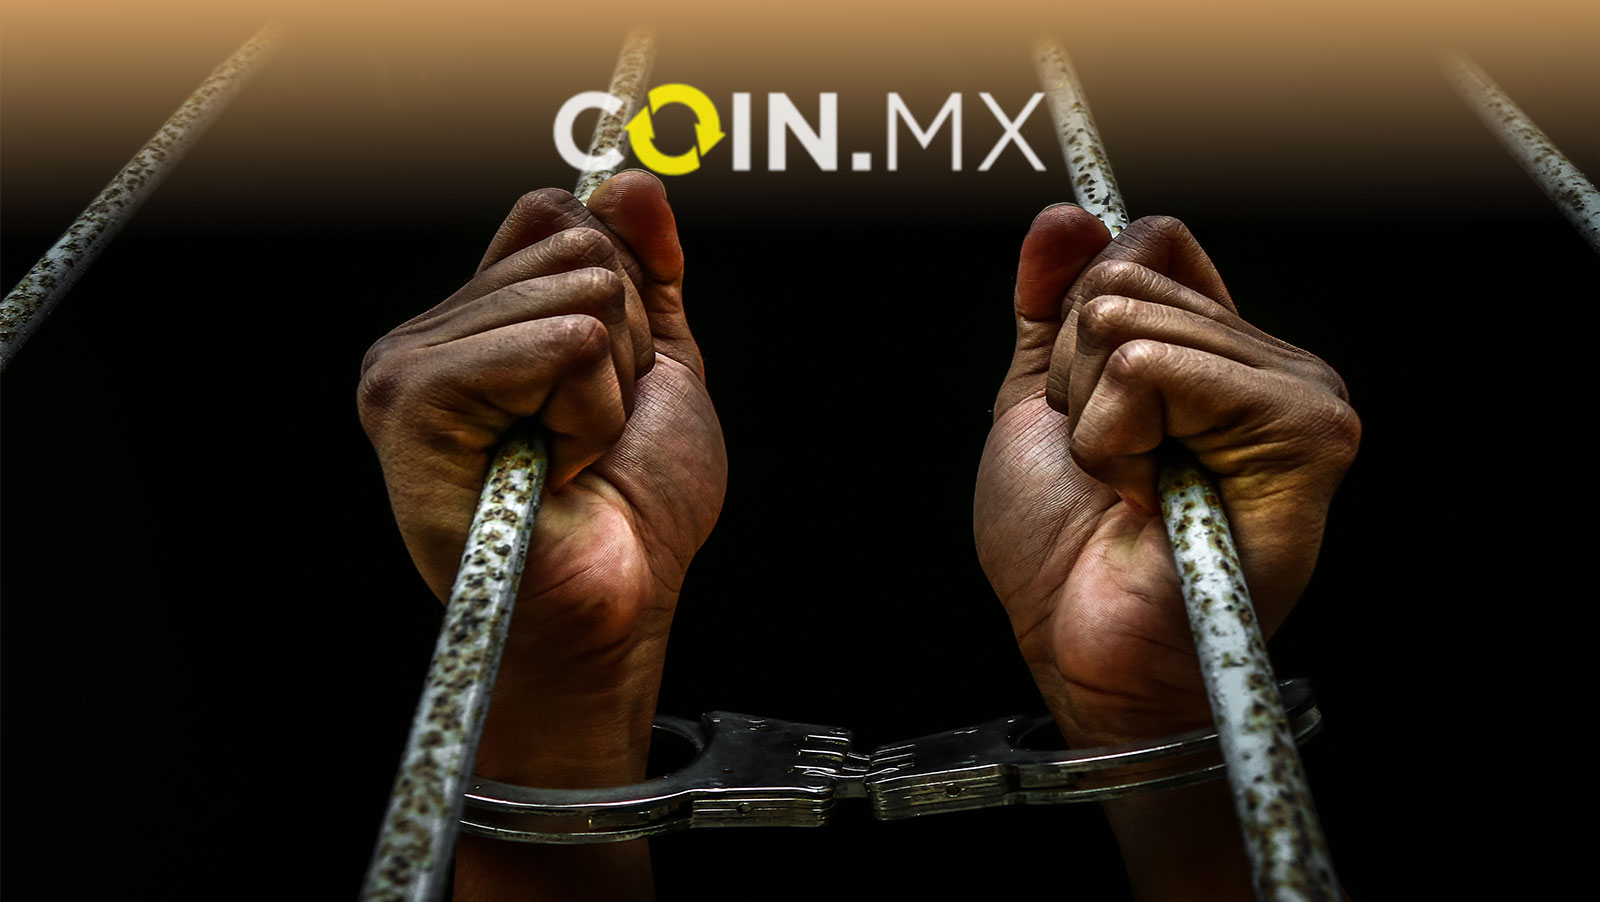 Pastor linked to Coin.mx bribery sentenced to 5 years in jail